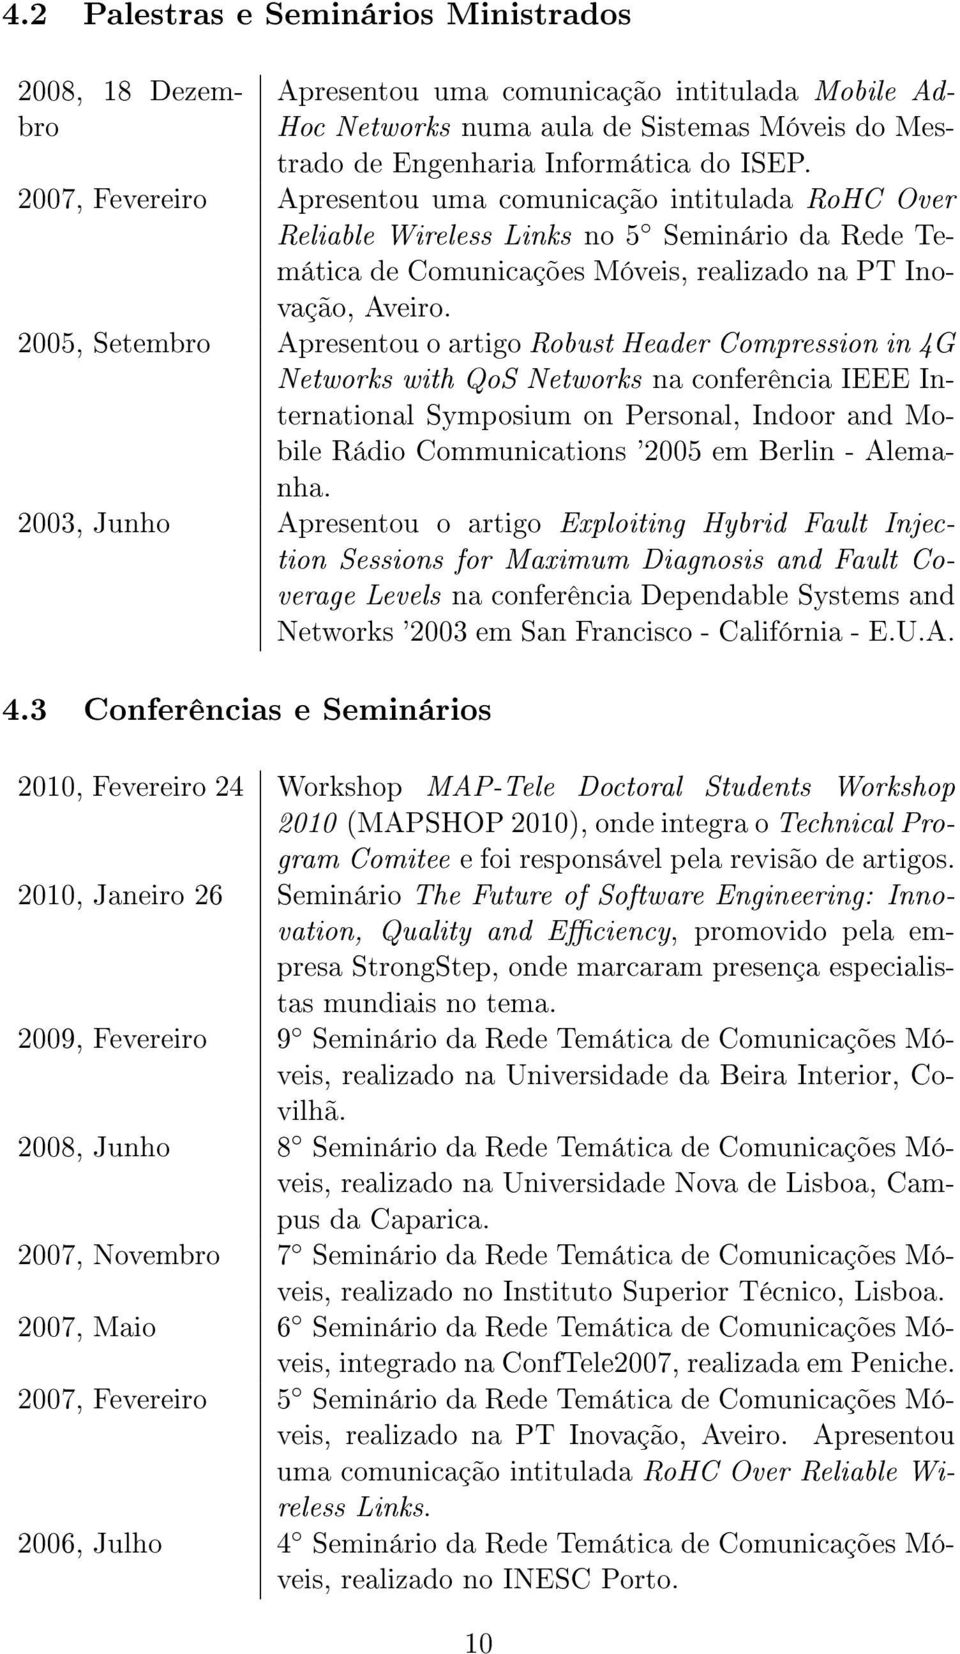 2005, Setembro Apresentou o artigo Robust Header Compression in 4G Networks with QoS Networks na conferência IEEE International Symposium on Personal, Indoor and Mobile Rádio Communications '2005 em